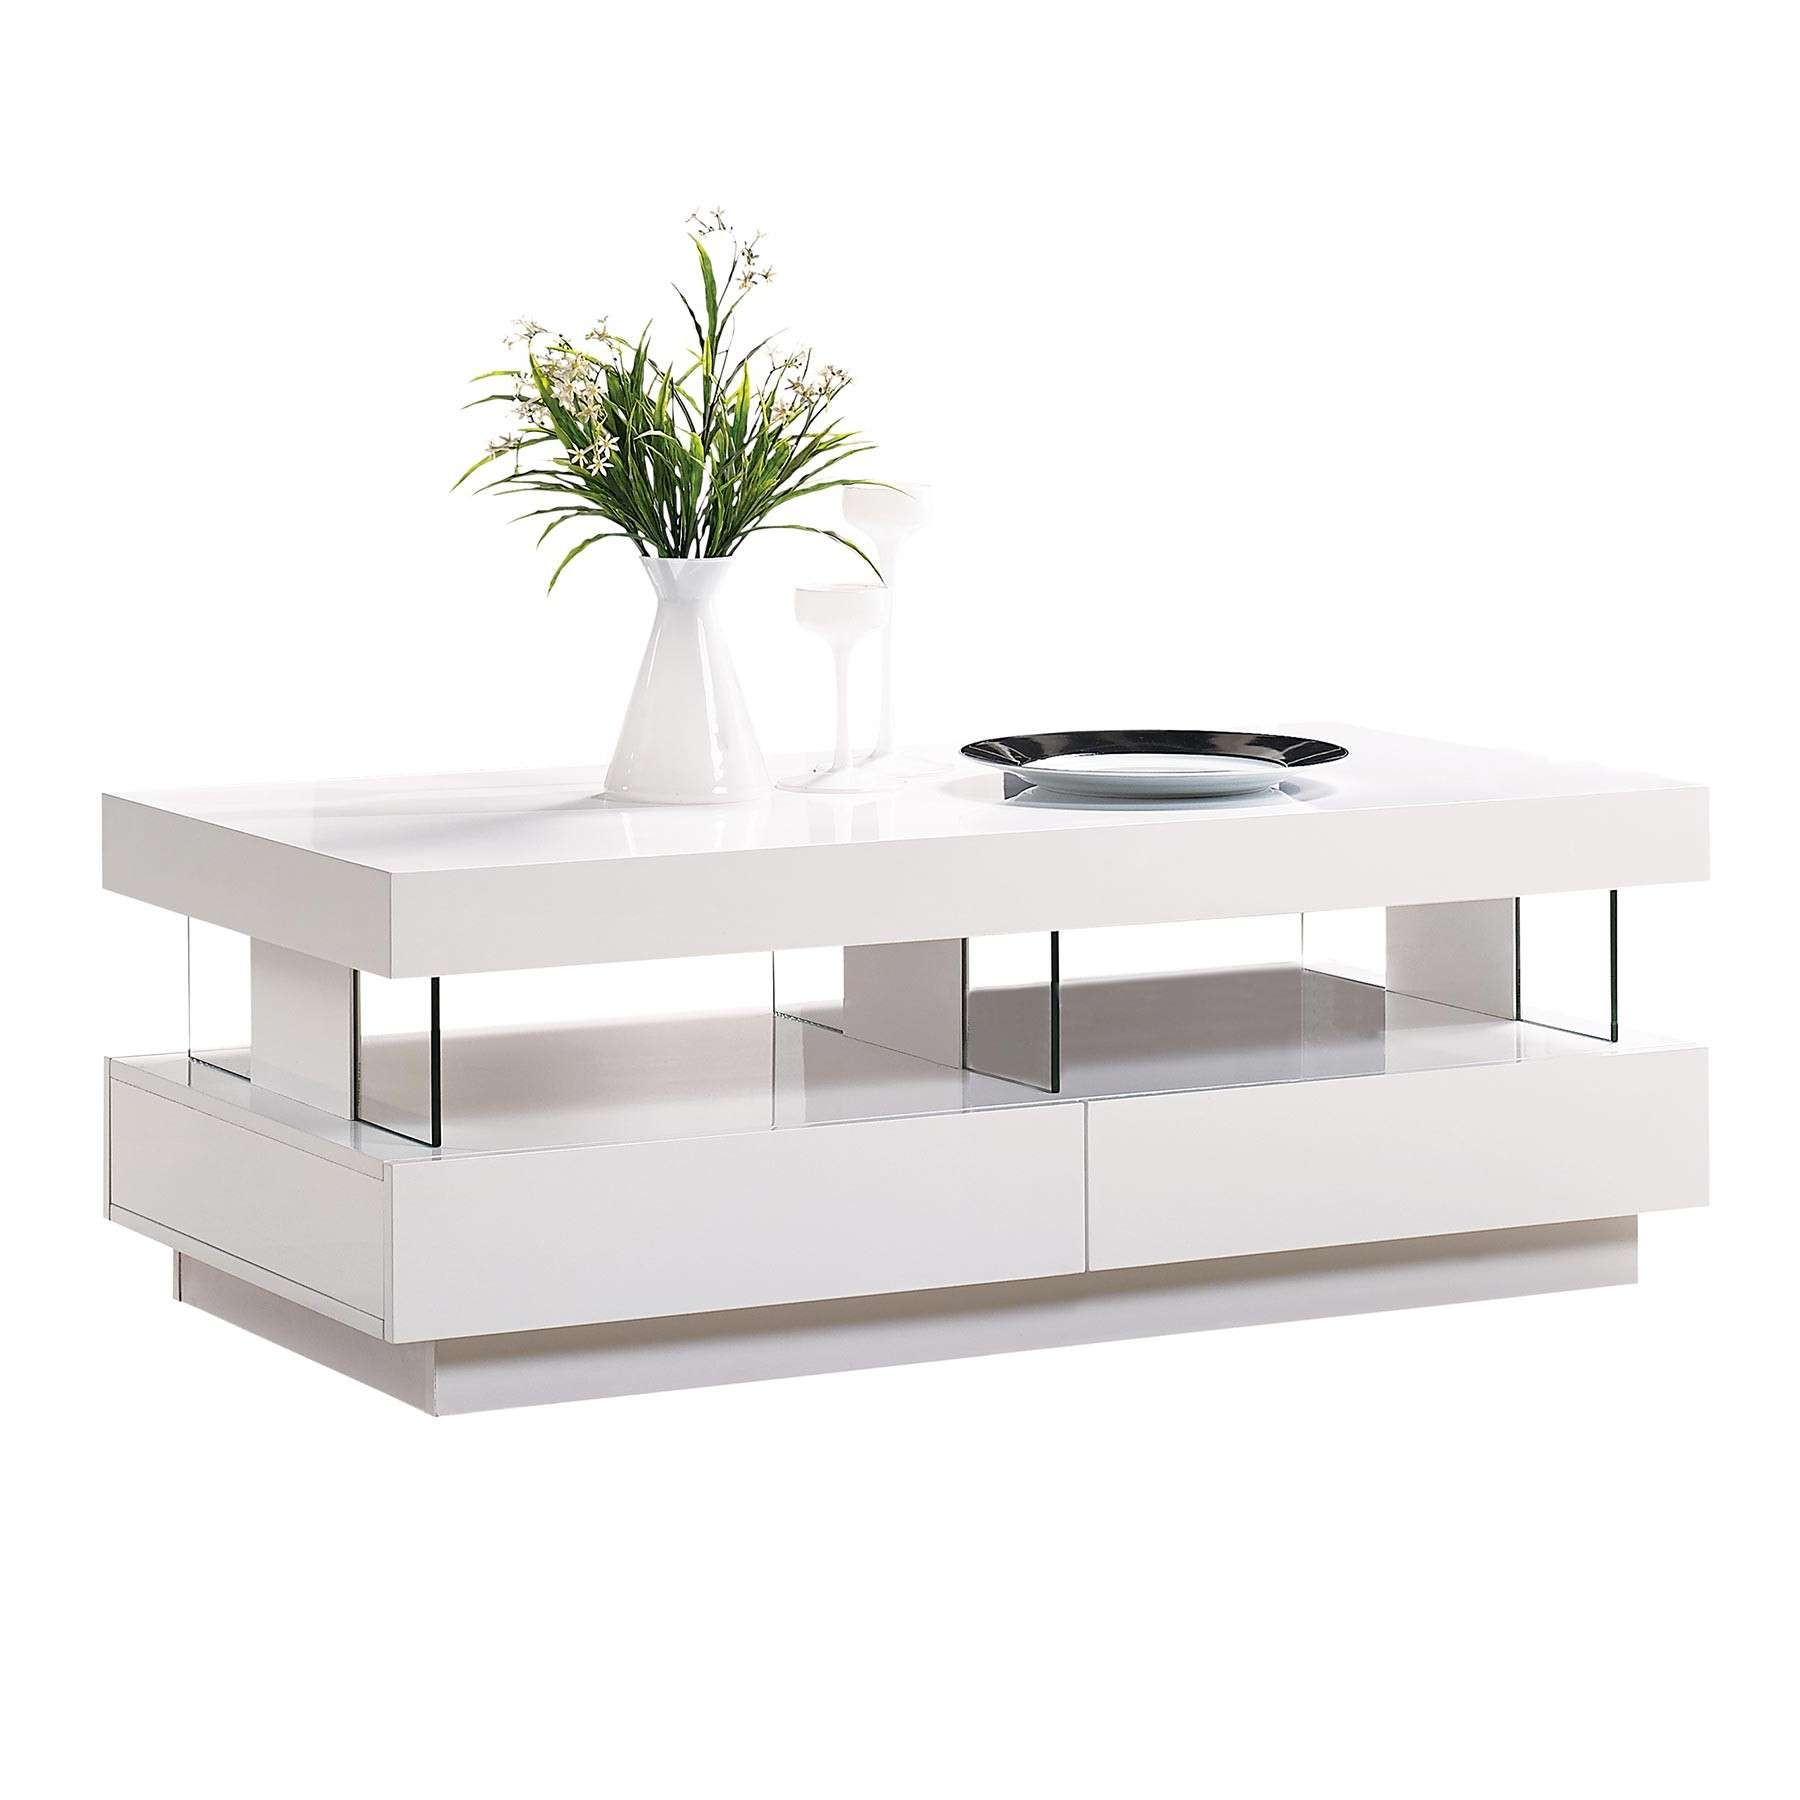 Most Popular High Gloss Coffee Tables In White Gloss Coffee Table Led Light (View 3 of 20)